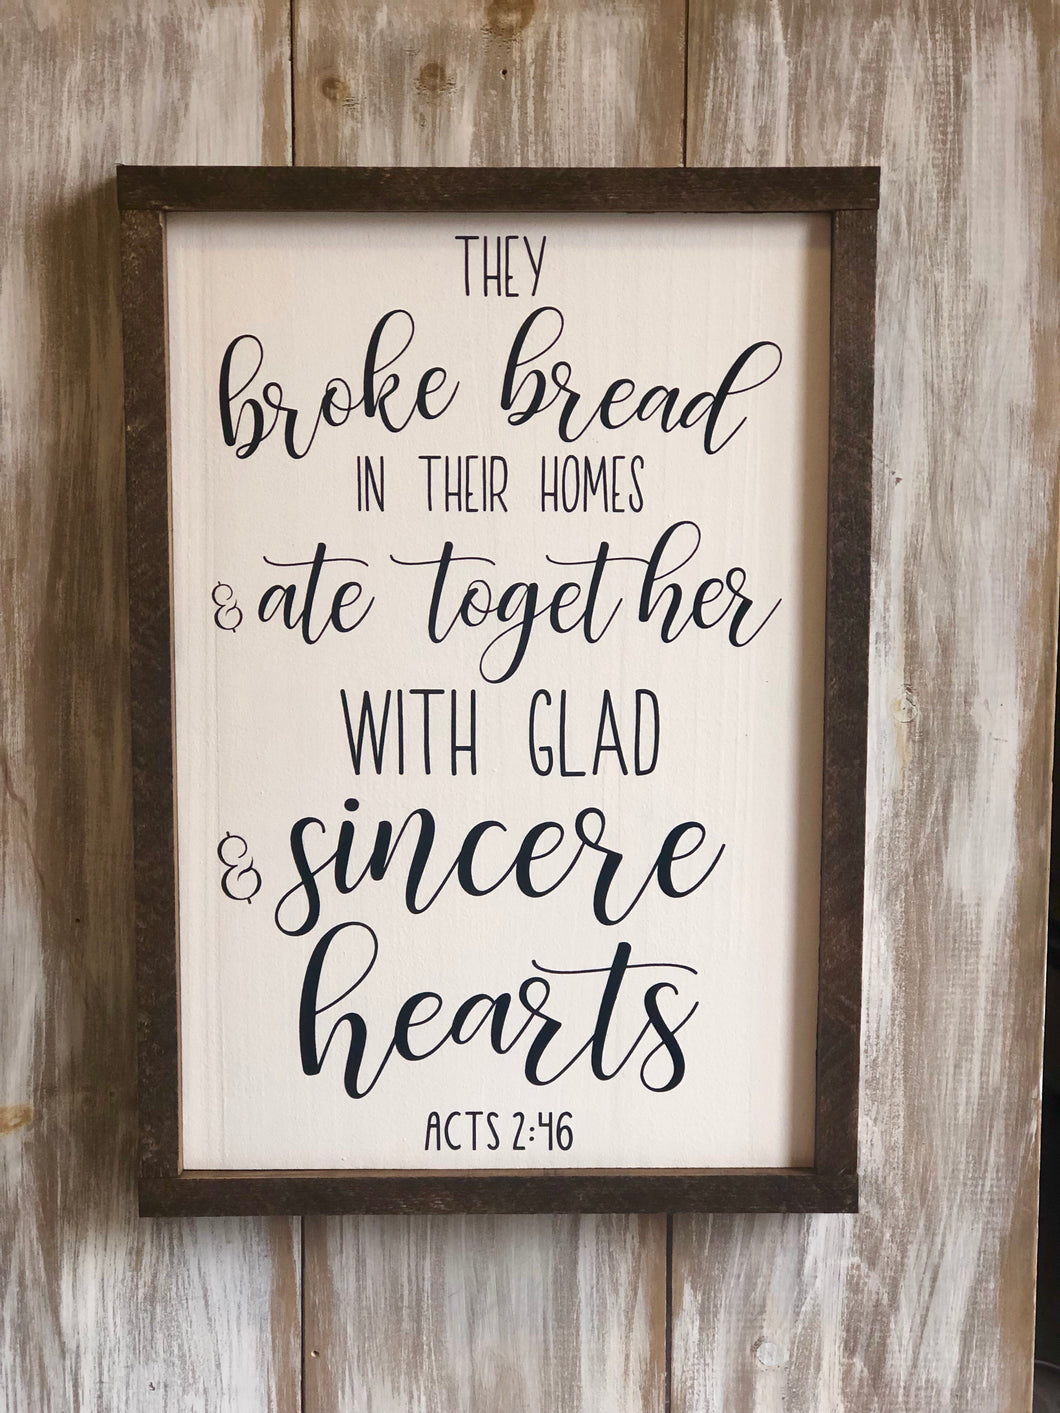 """They broke bread...Acts 2:46"" quote sign"